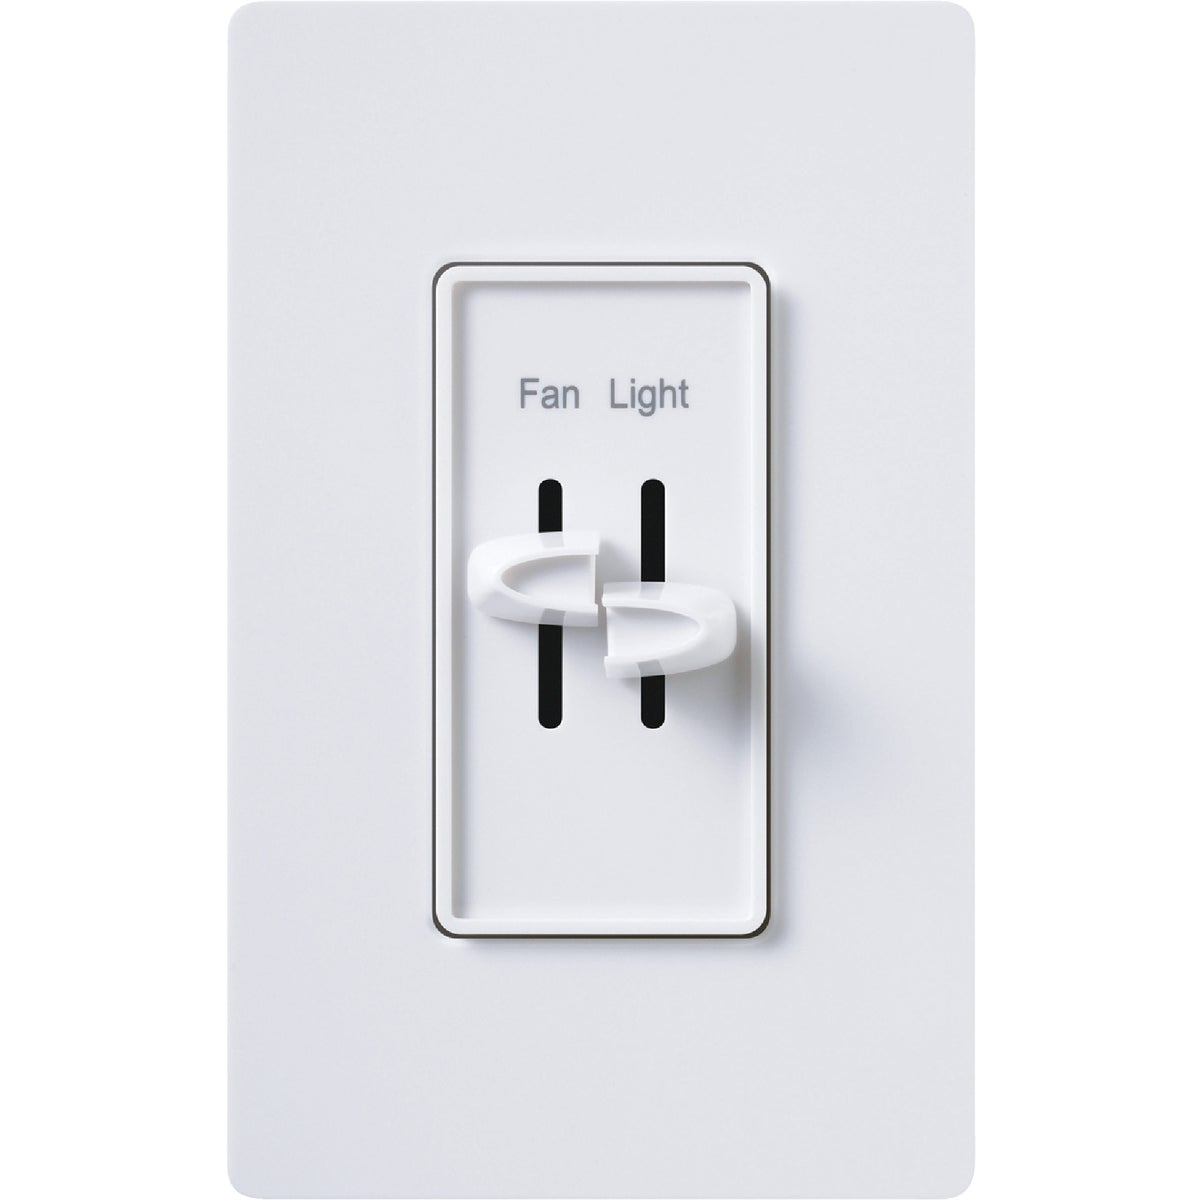 WH FAN CNTRL AND DIMMER - S2-LFSQH-WH by Lutron Elect Co Inc